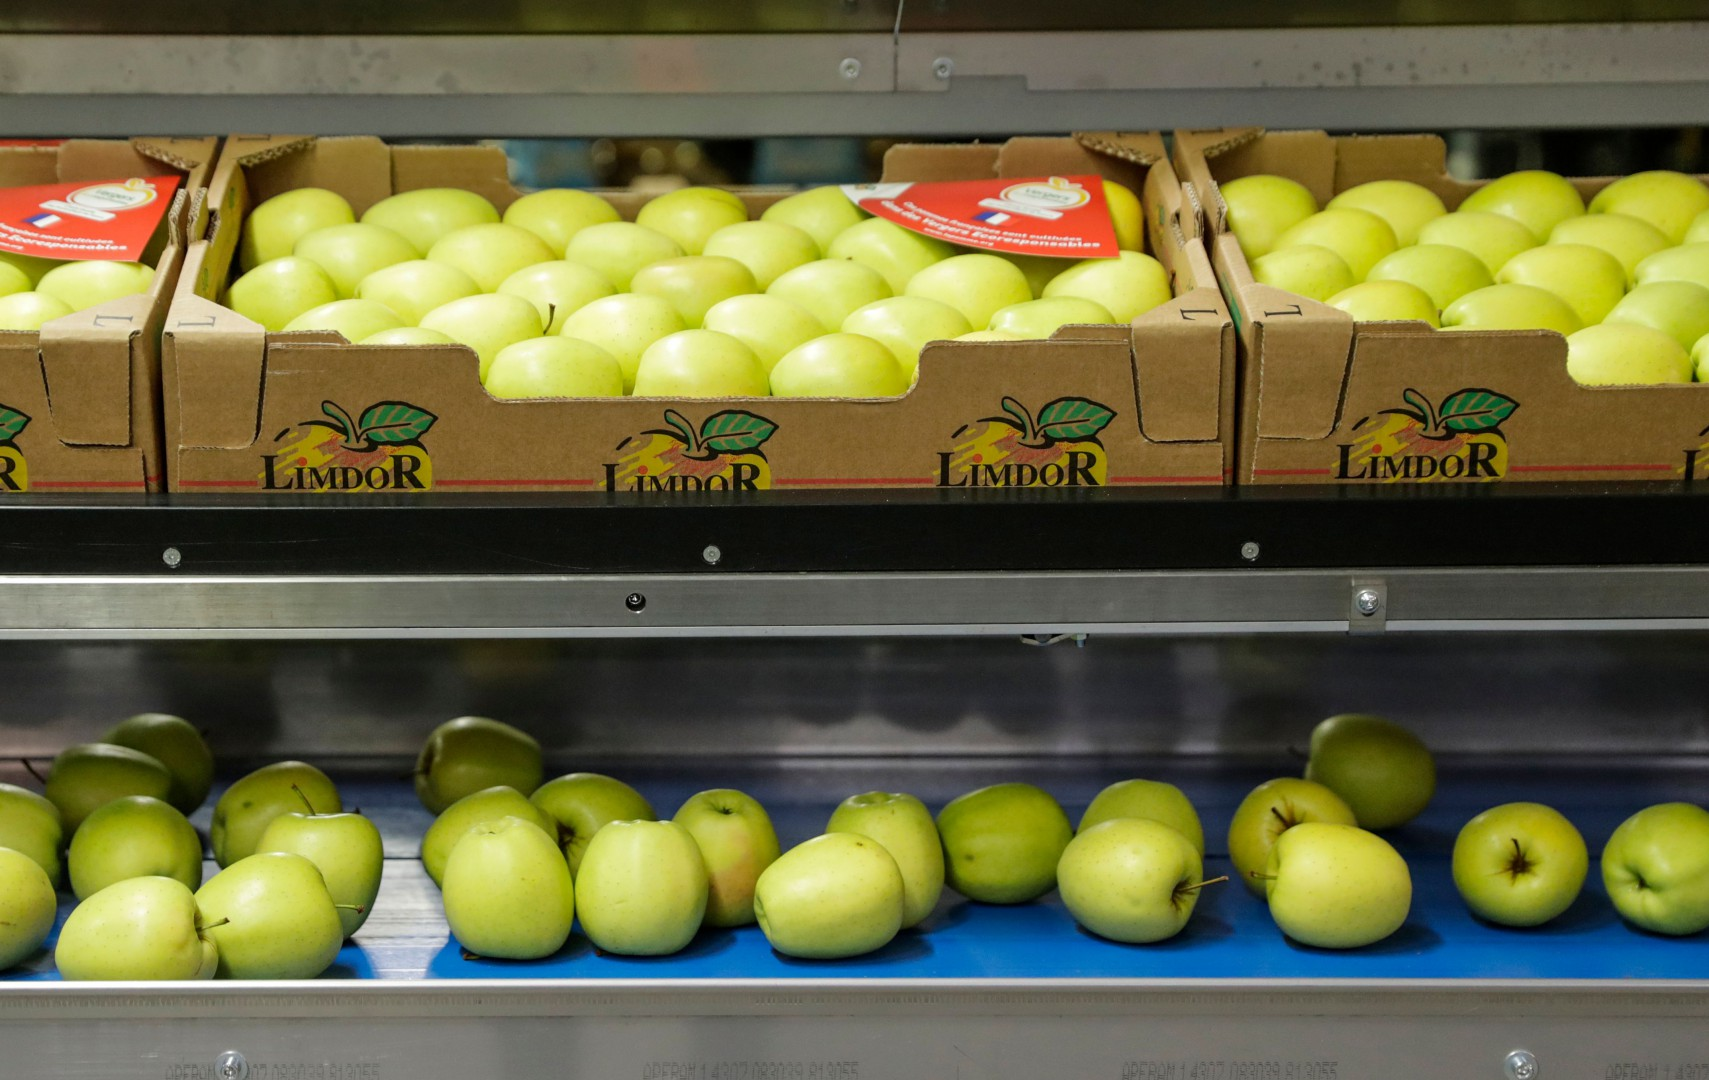 Bio certified apples are pictured in the Limdor fruit cooperative in Saint-Yrieix-la-Perche, central western France, on December 21, 2018. (Photo by Thomas SAMSON / AFP)